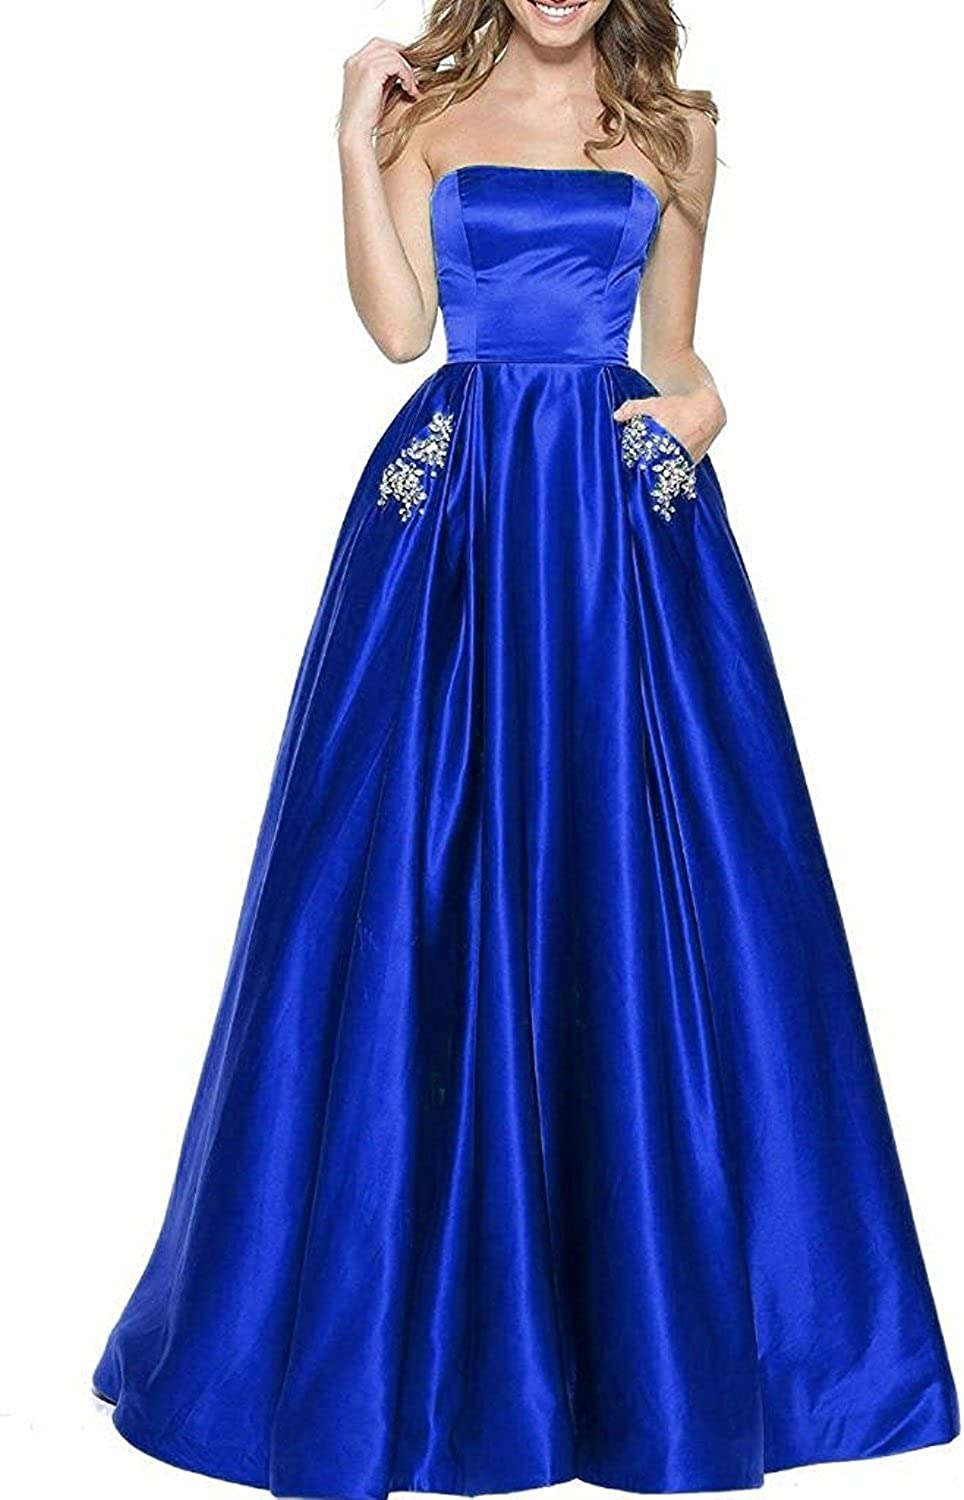 20KyleBird ALine Strapless Prom Dresses Long 2018 Satin Beaded Evening Party Gowns for Women with Pockets KB005